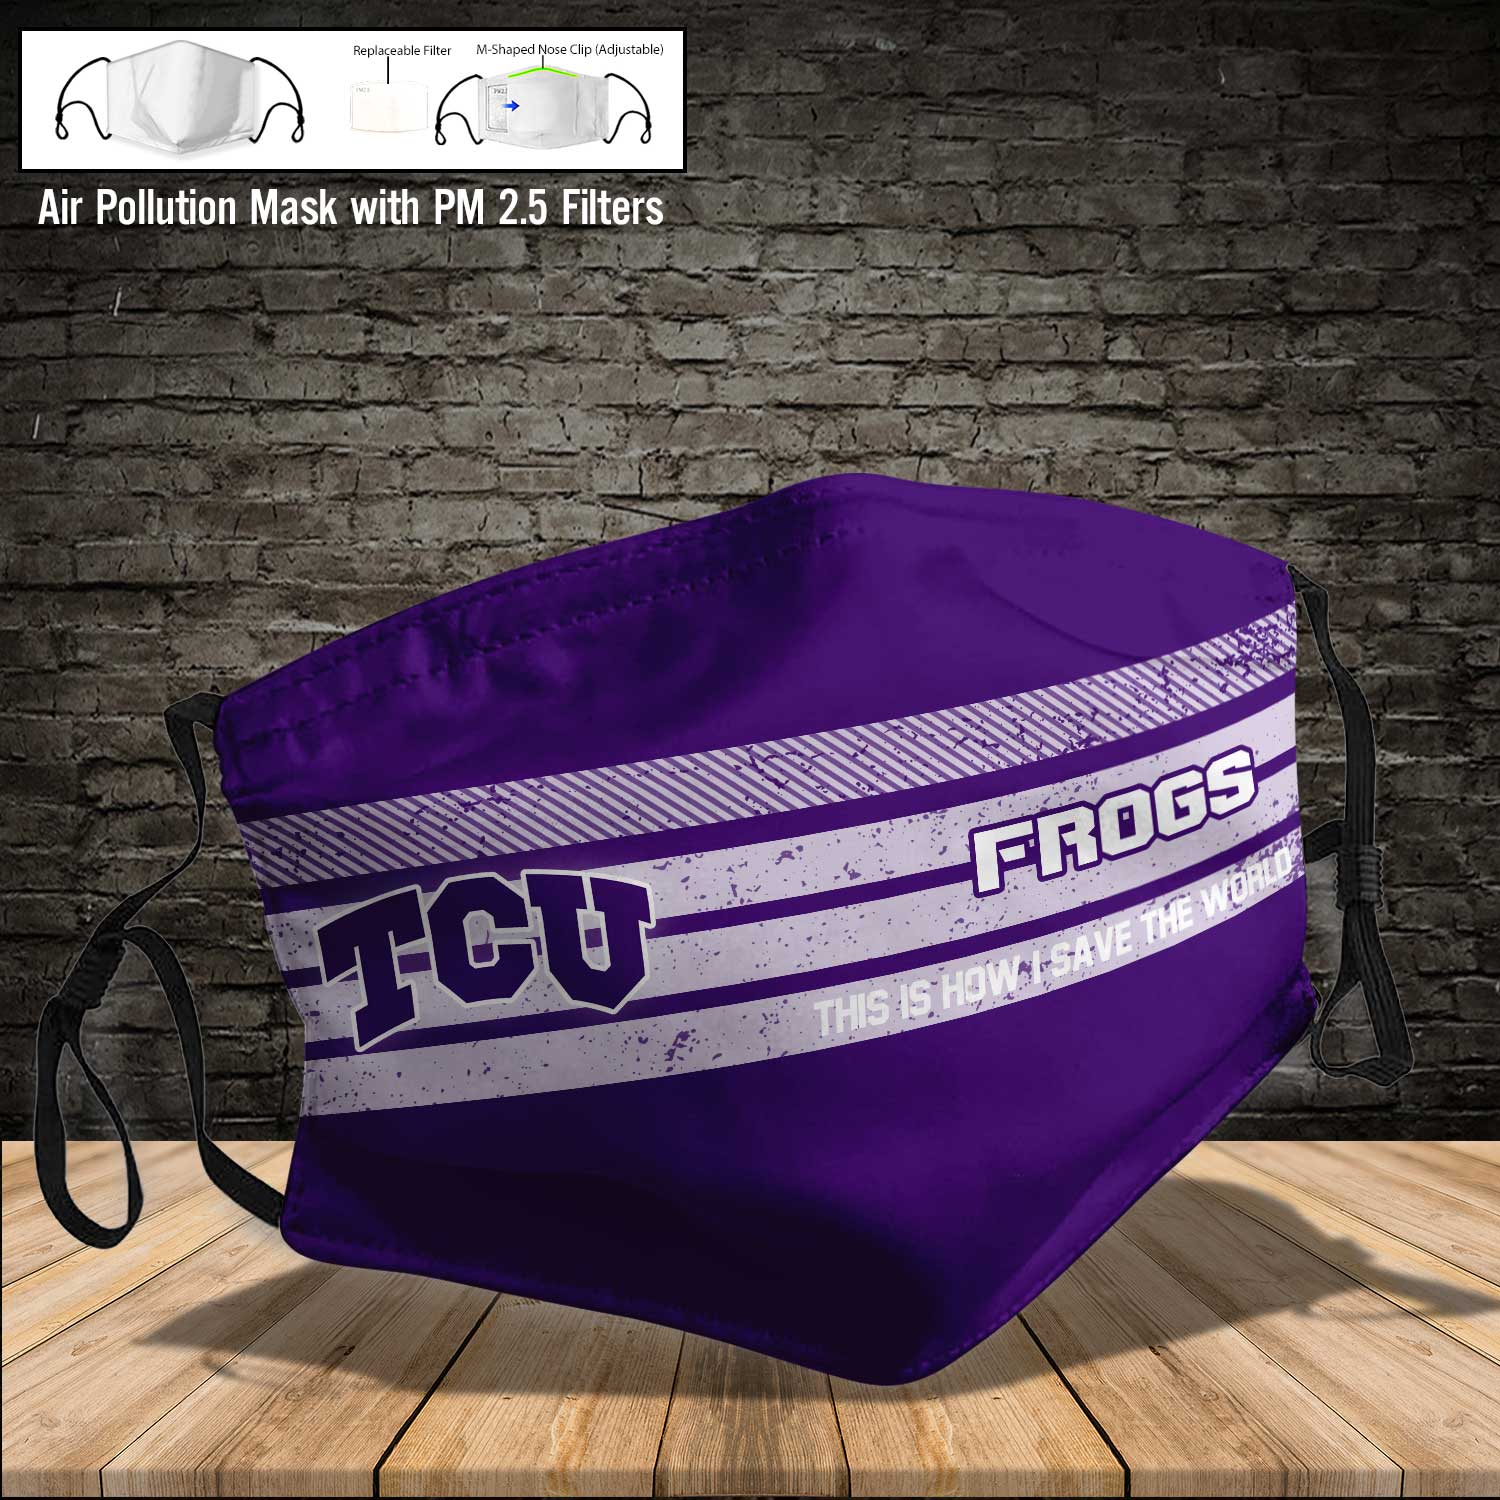 TCU horned frogs this is how i save the world face mask 4